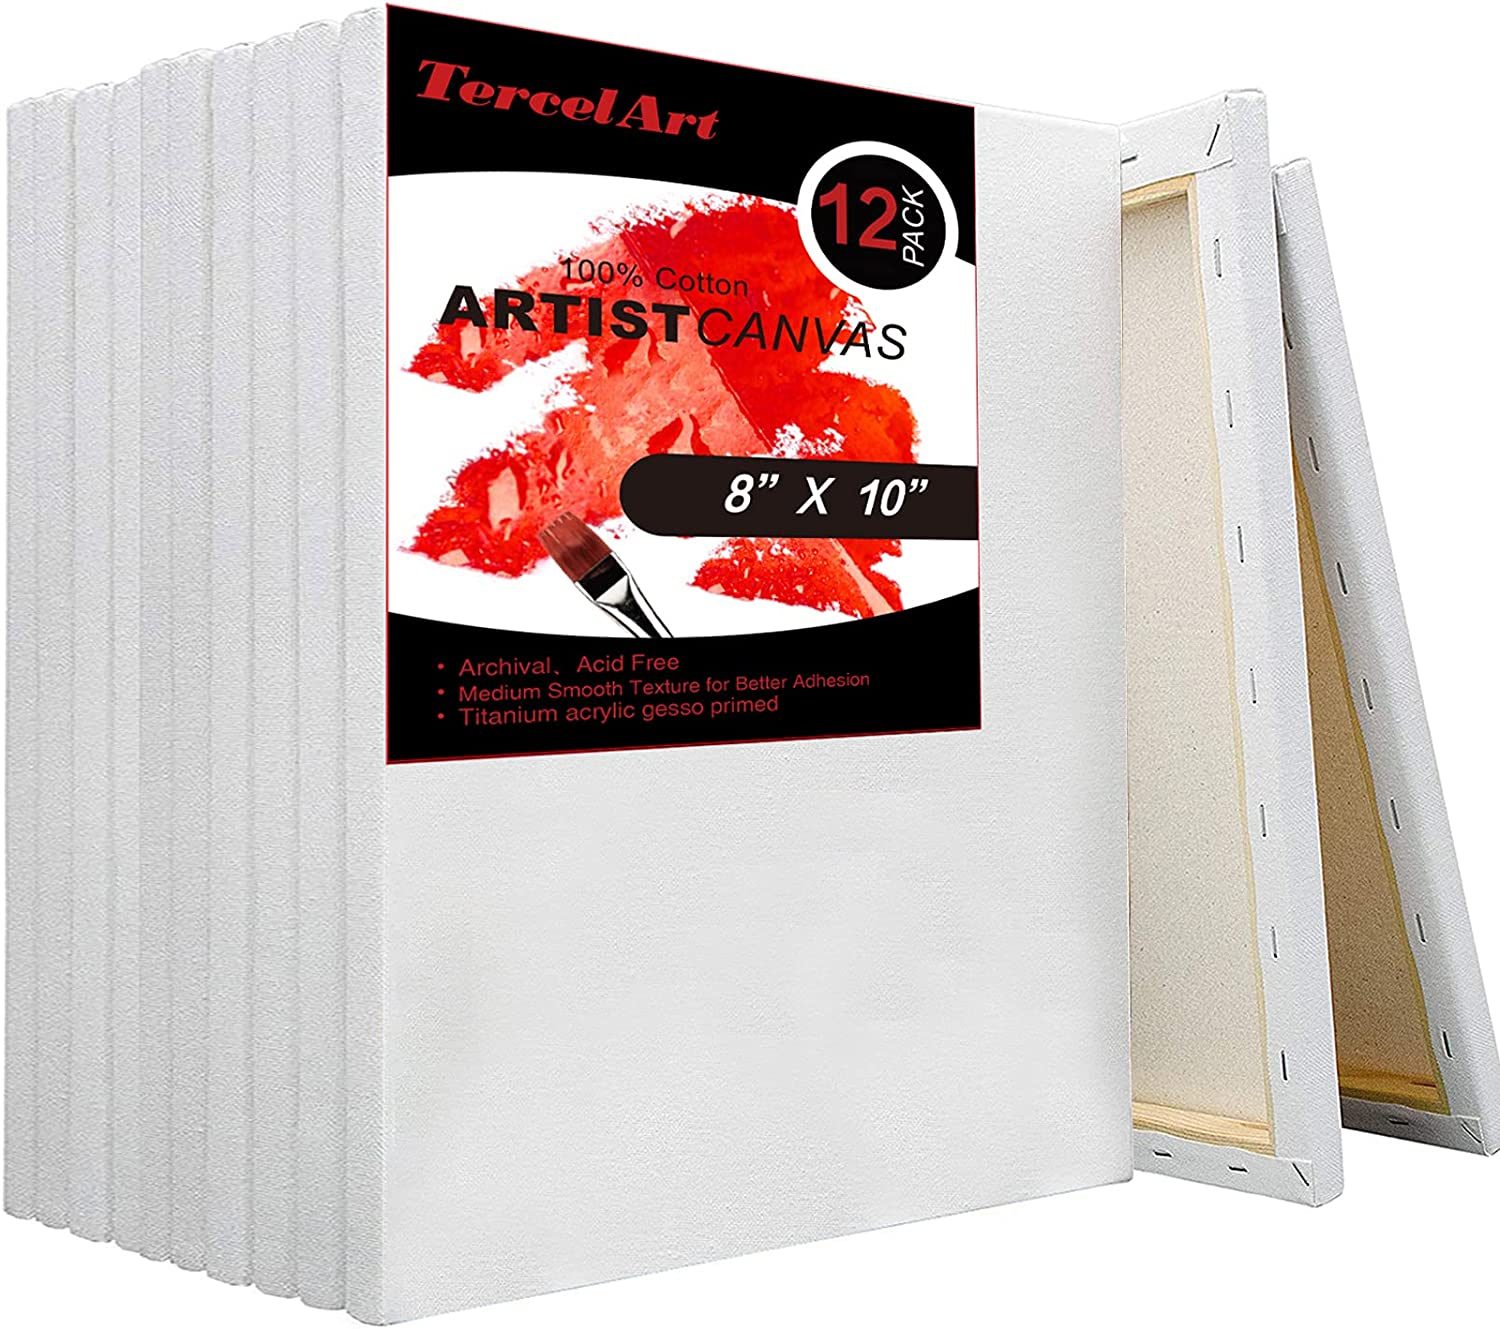 TercelArt Stretched Canvas Pack of 12 for P Clearance Cheap super special price SALE Limited time 8x10 Inch Canvases